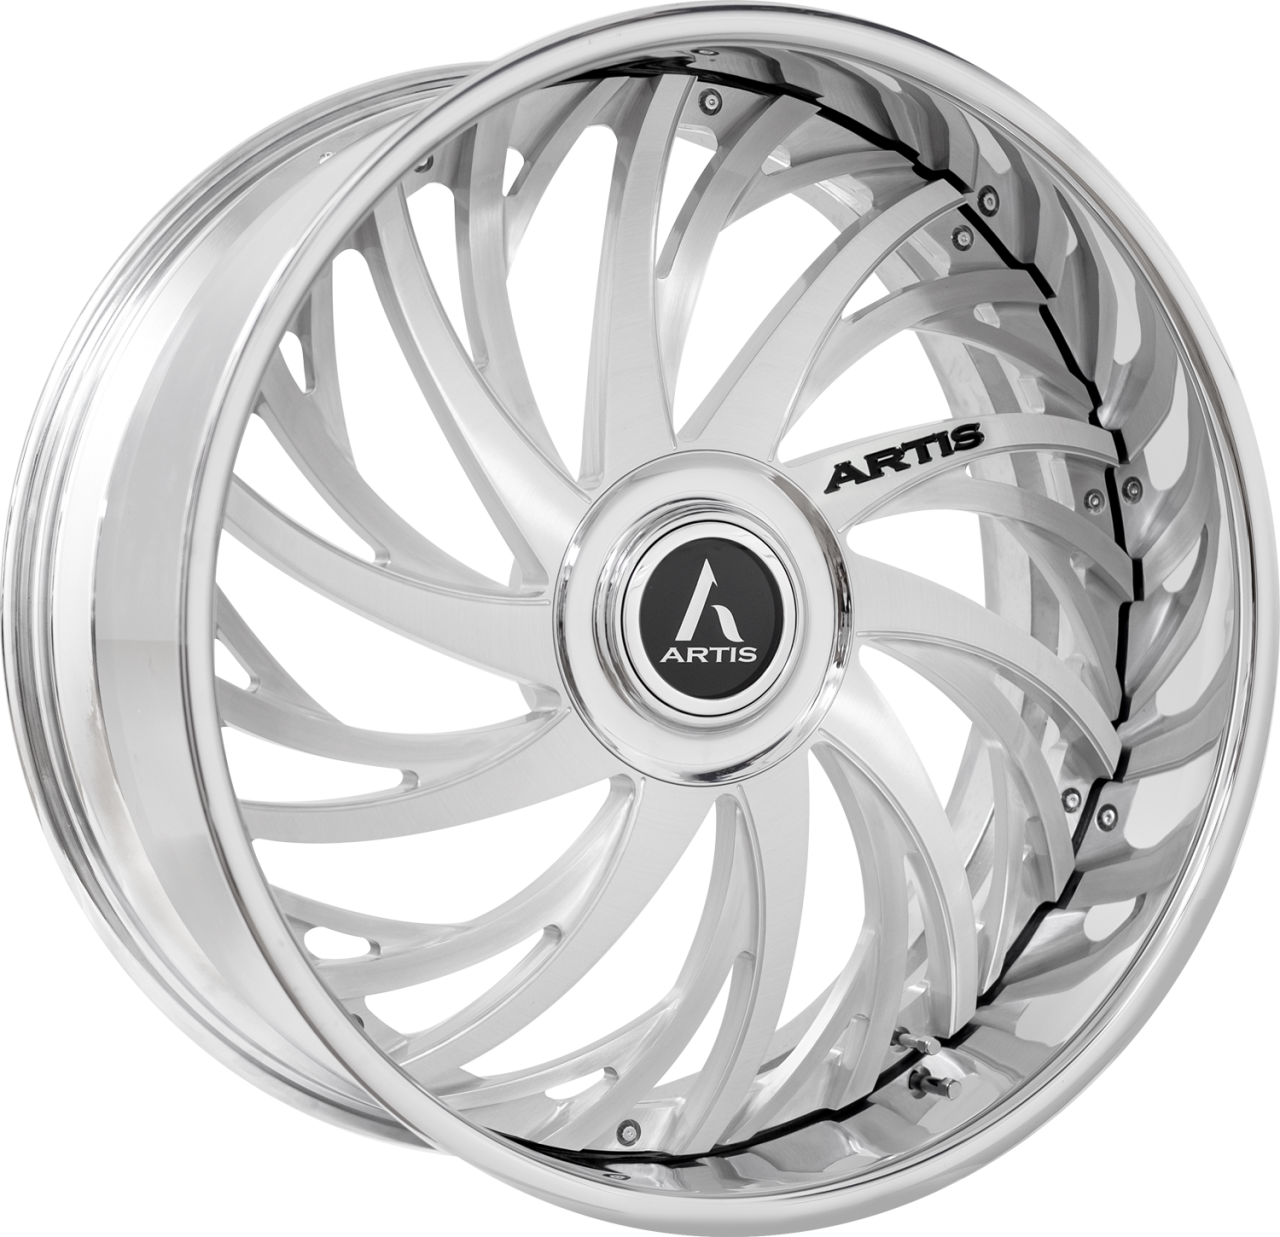 Artis Forged Decatur wheel with Brushed with XL Floater Cap finish